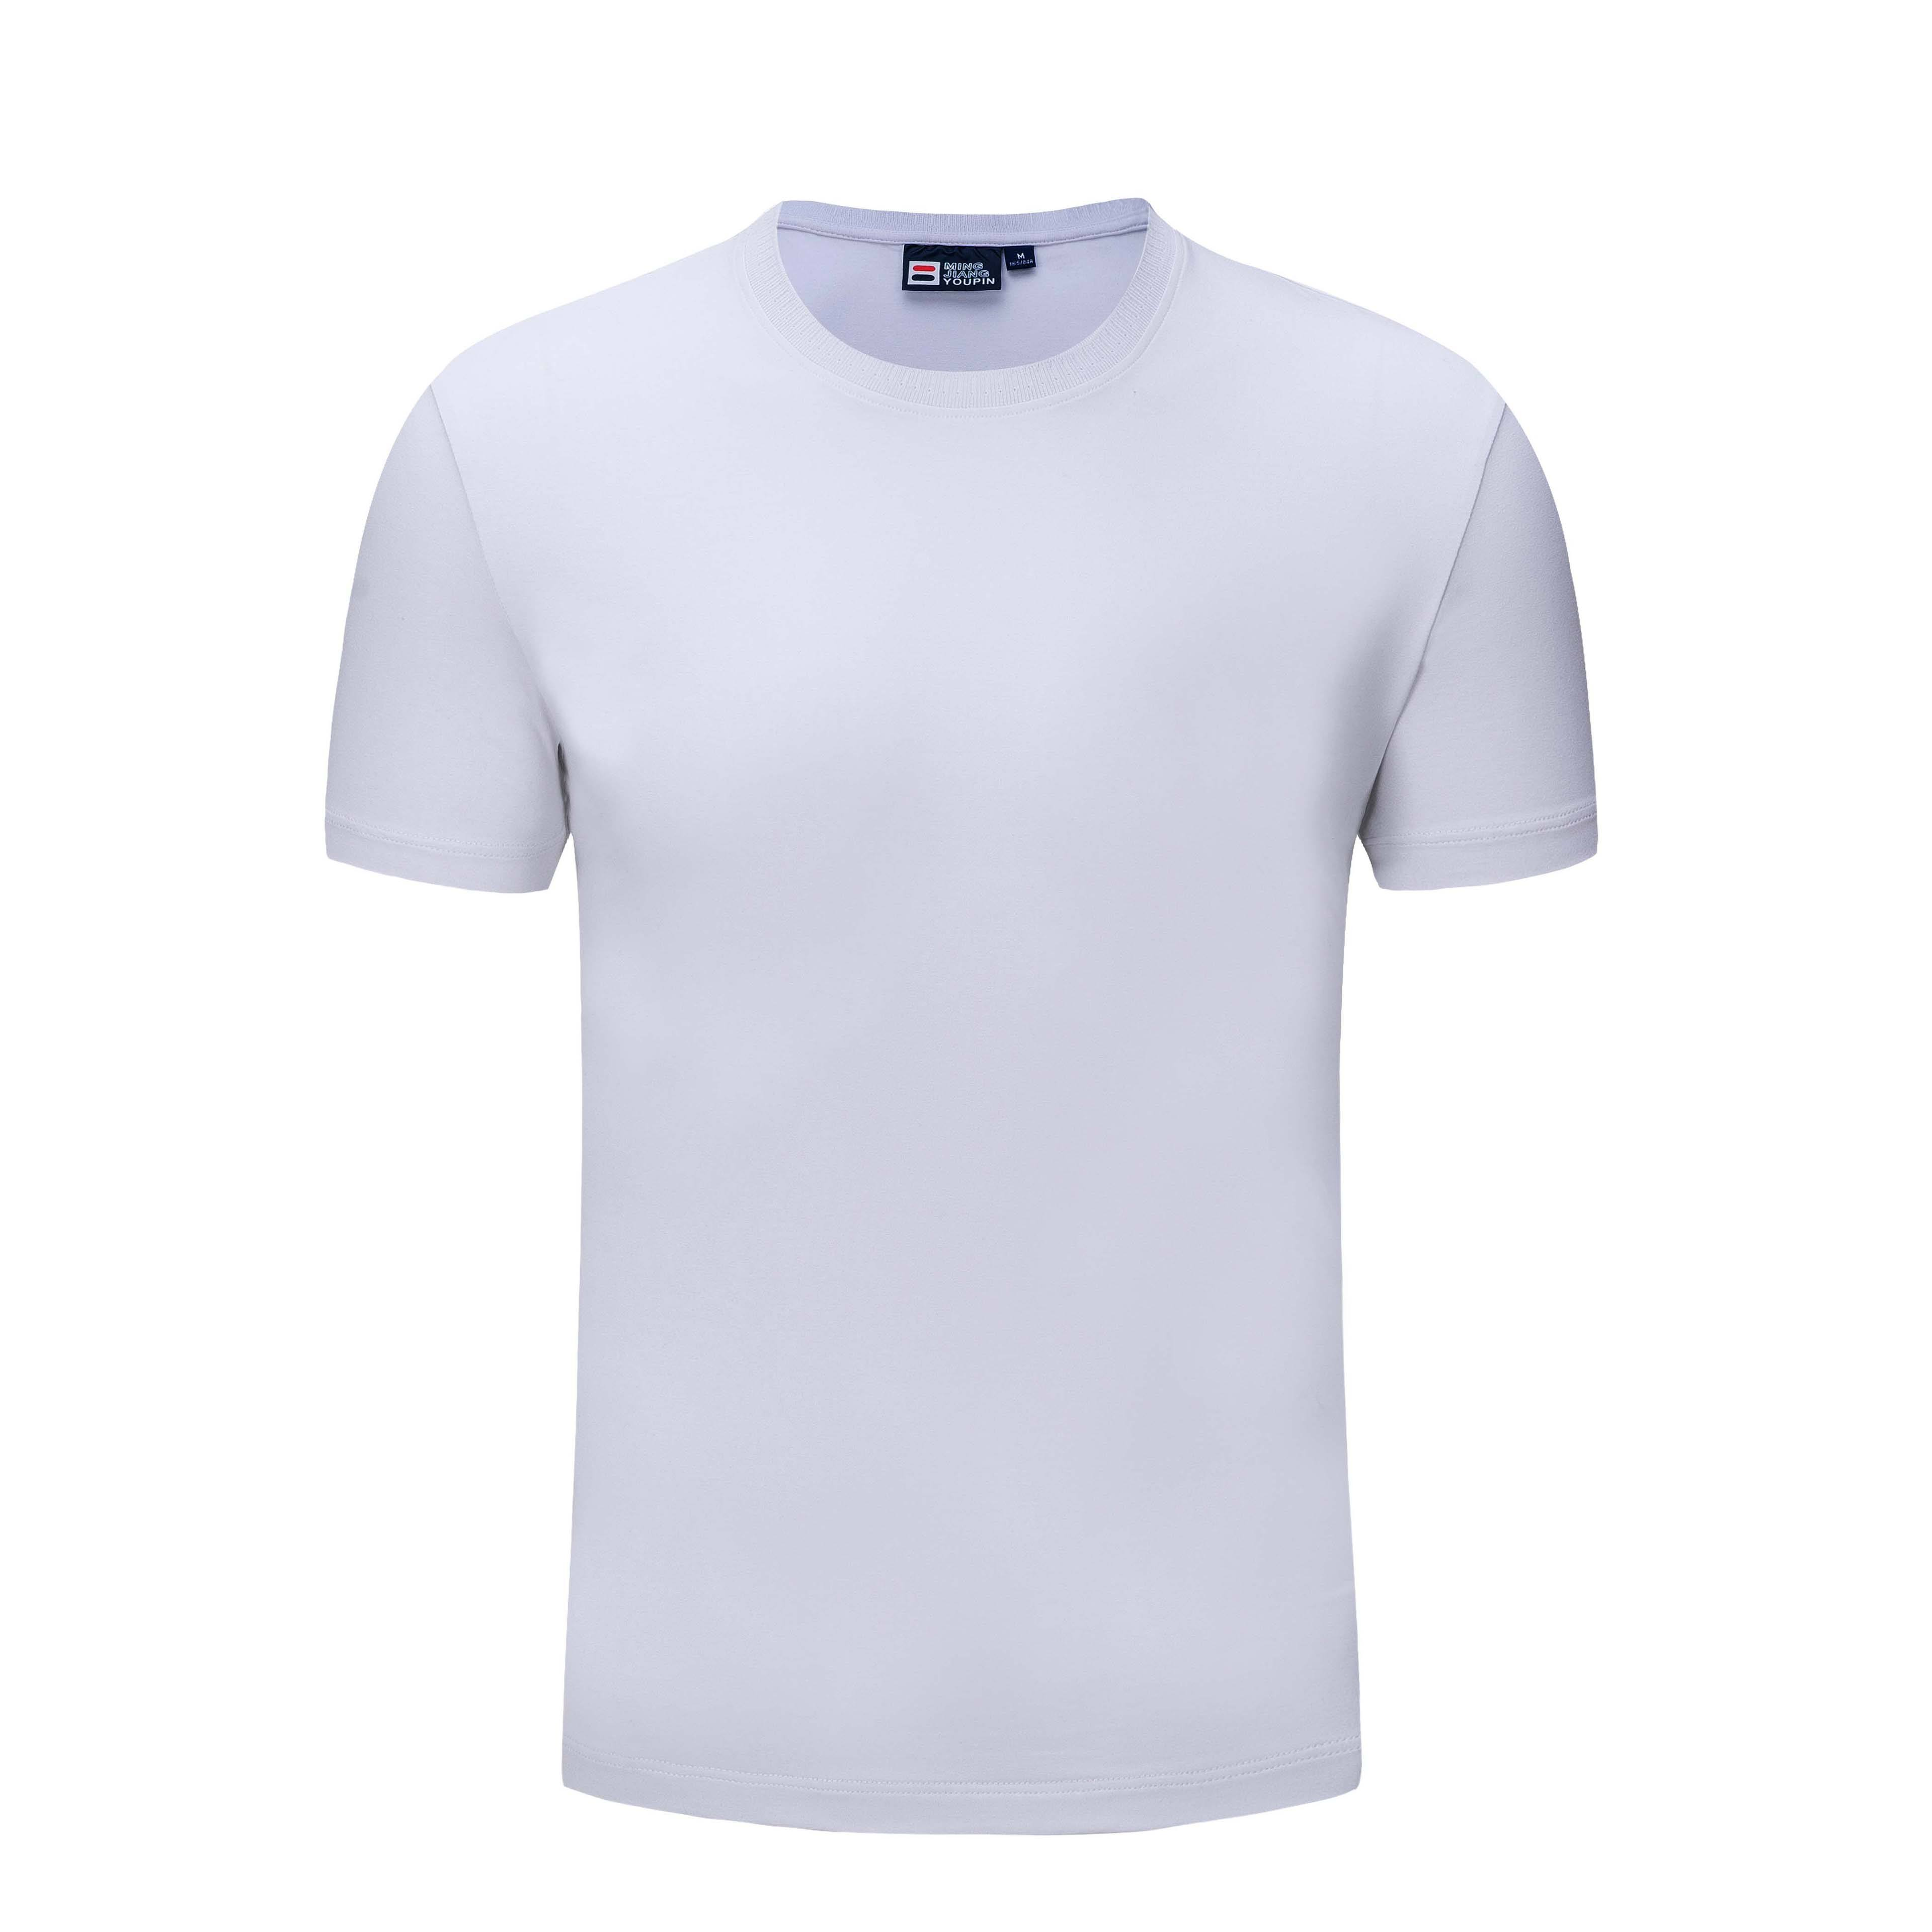 Drop shipping cotton spandex plain t shirt short sleeve T Shirts with round Collar